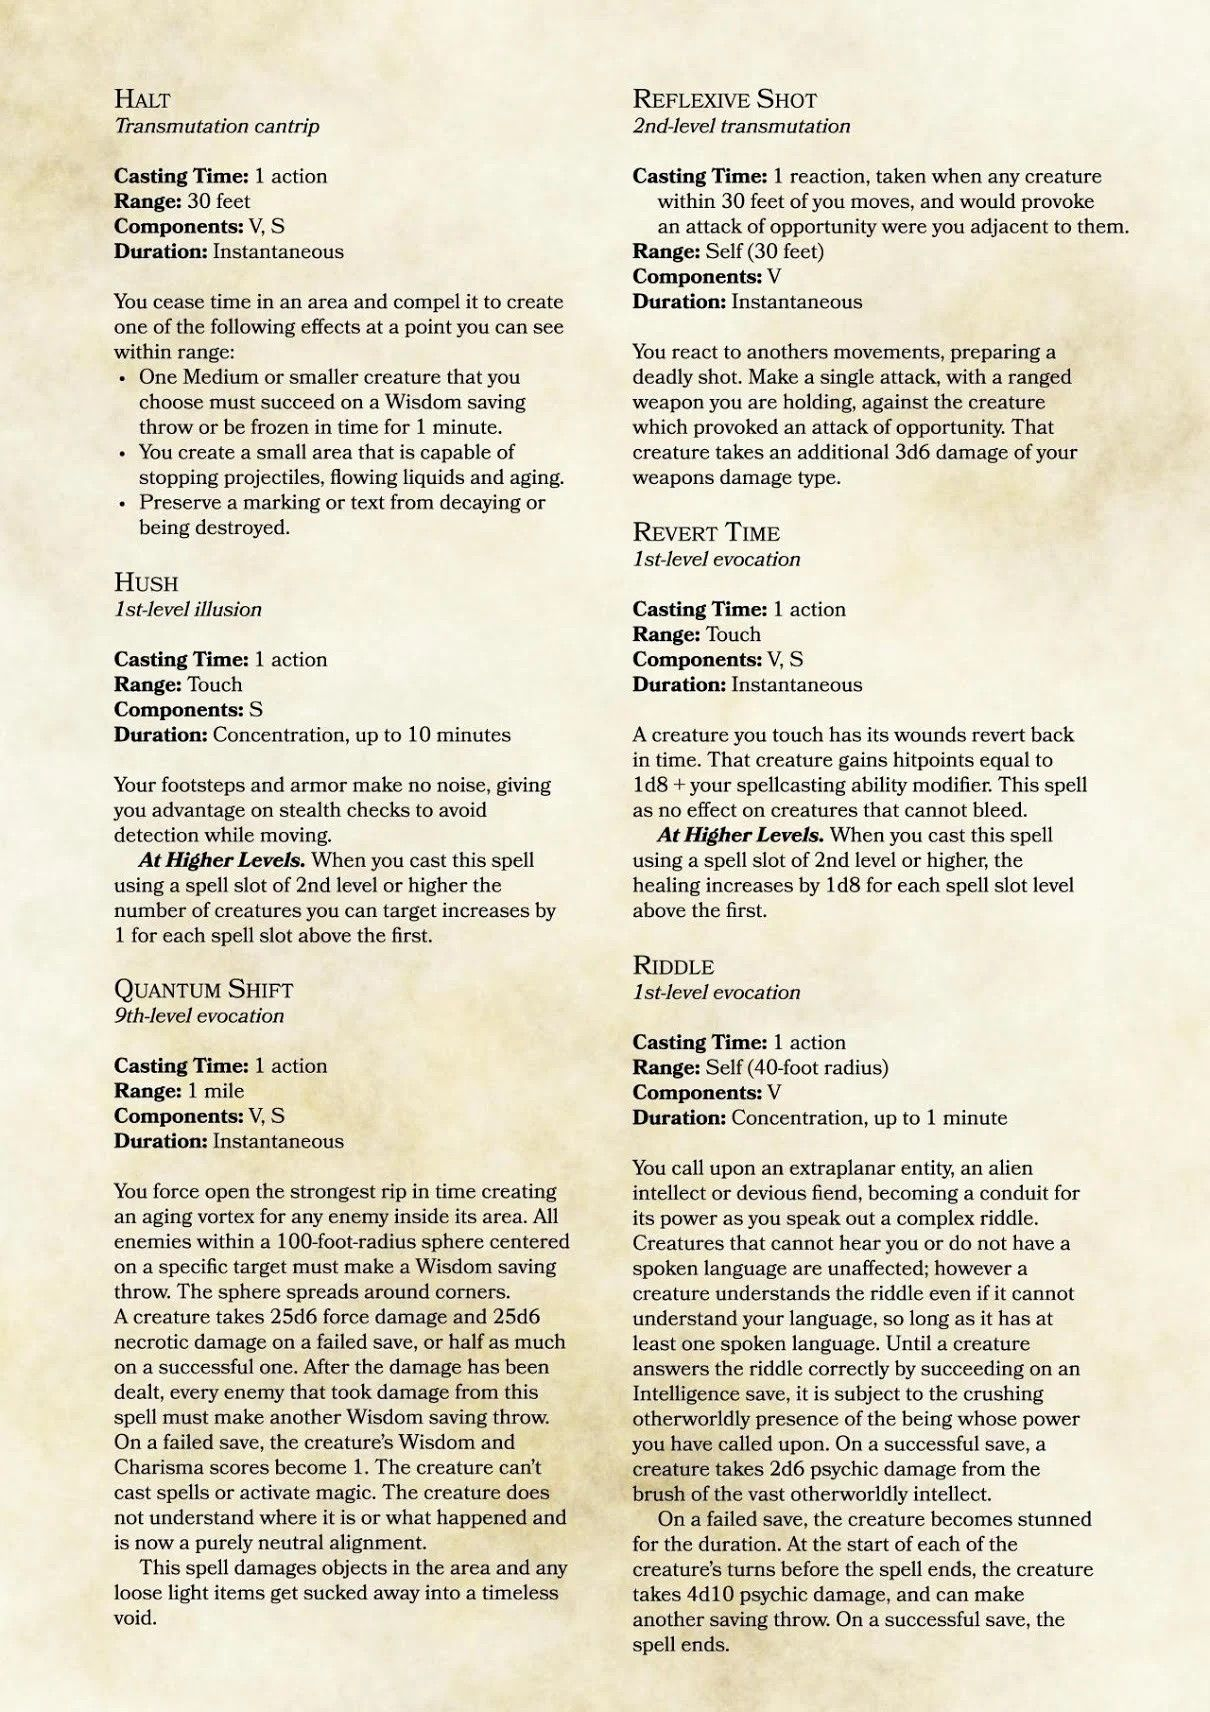 Pin by Laura Guebert on Dungeons Full of Dragons | Dnd 5e homebrew